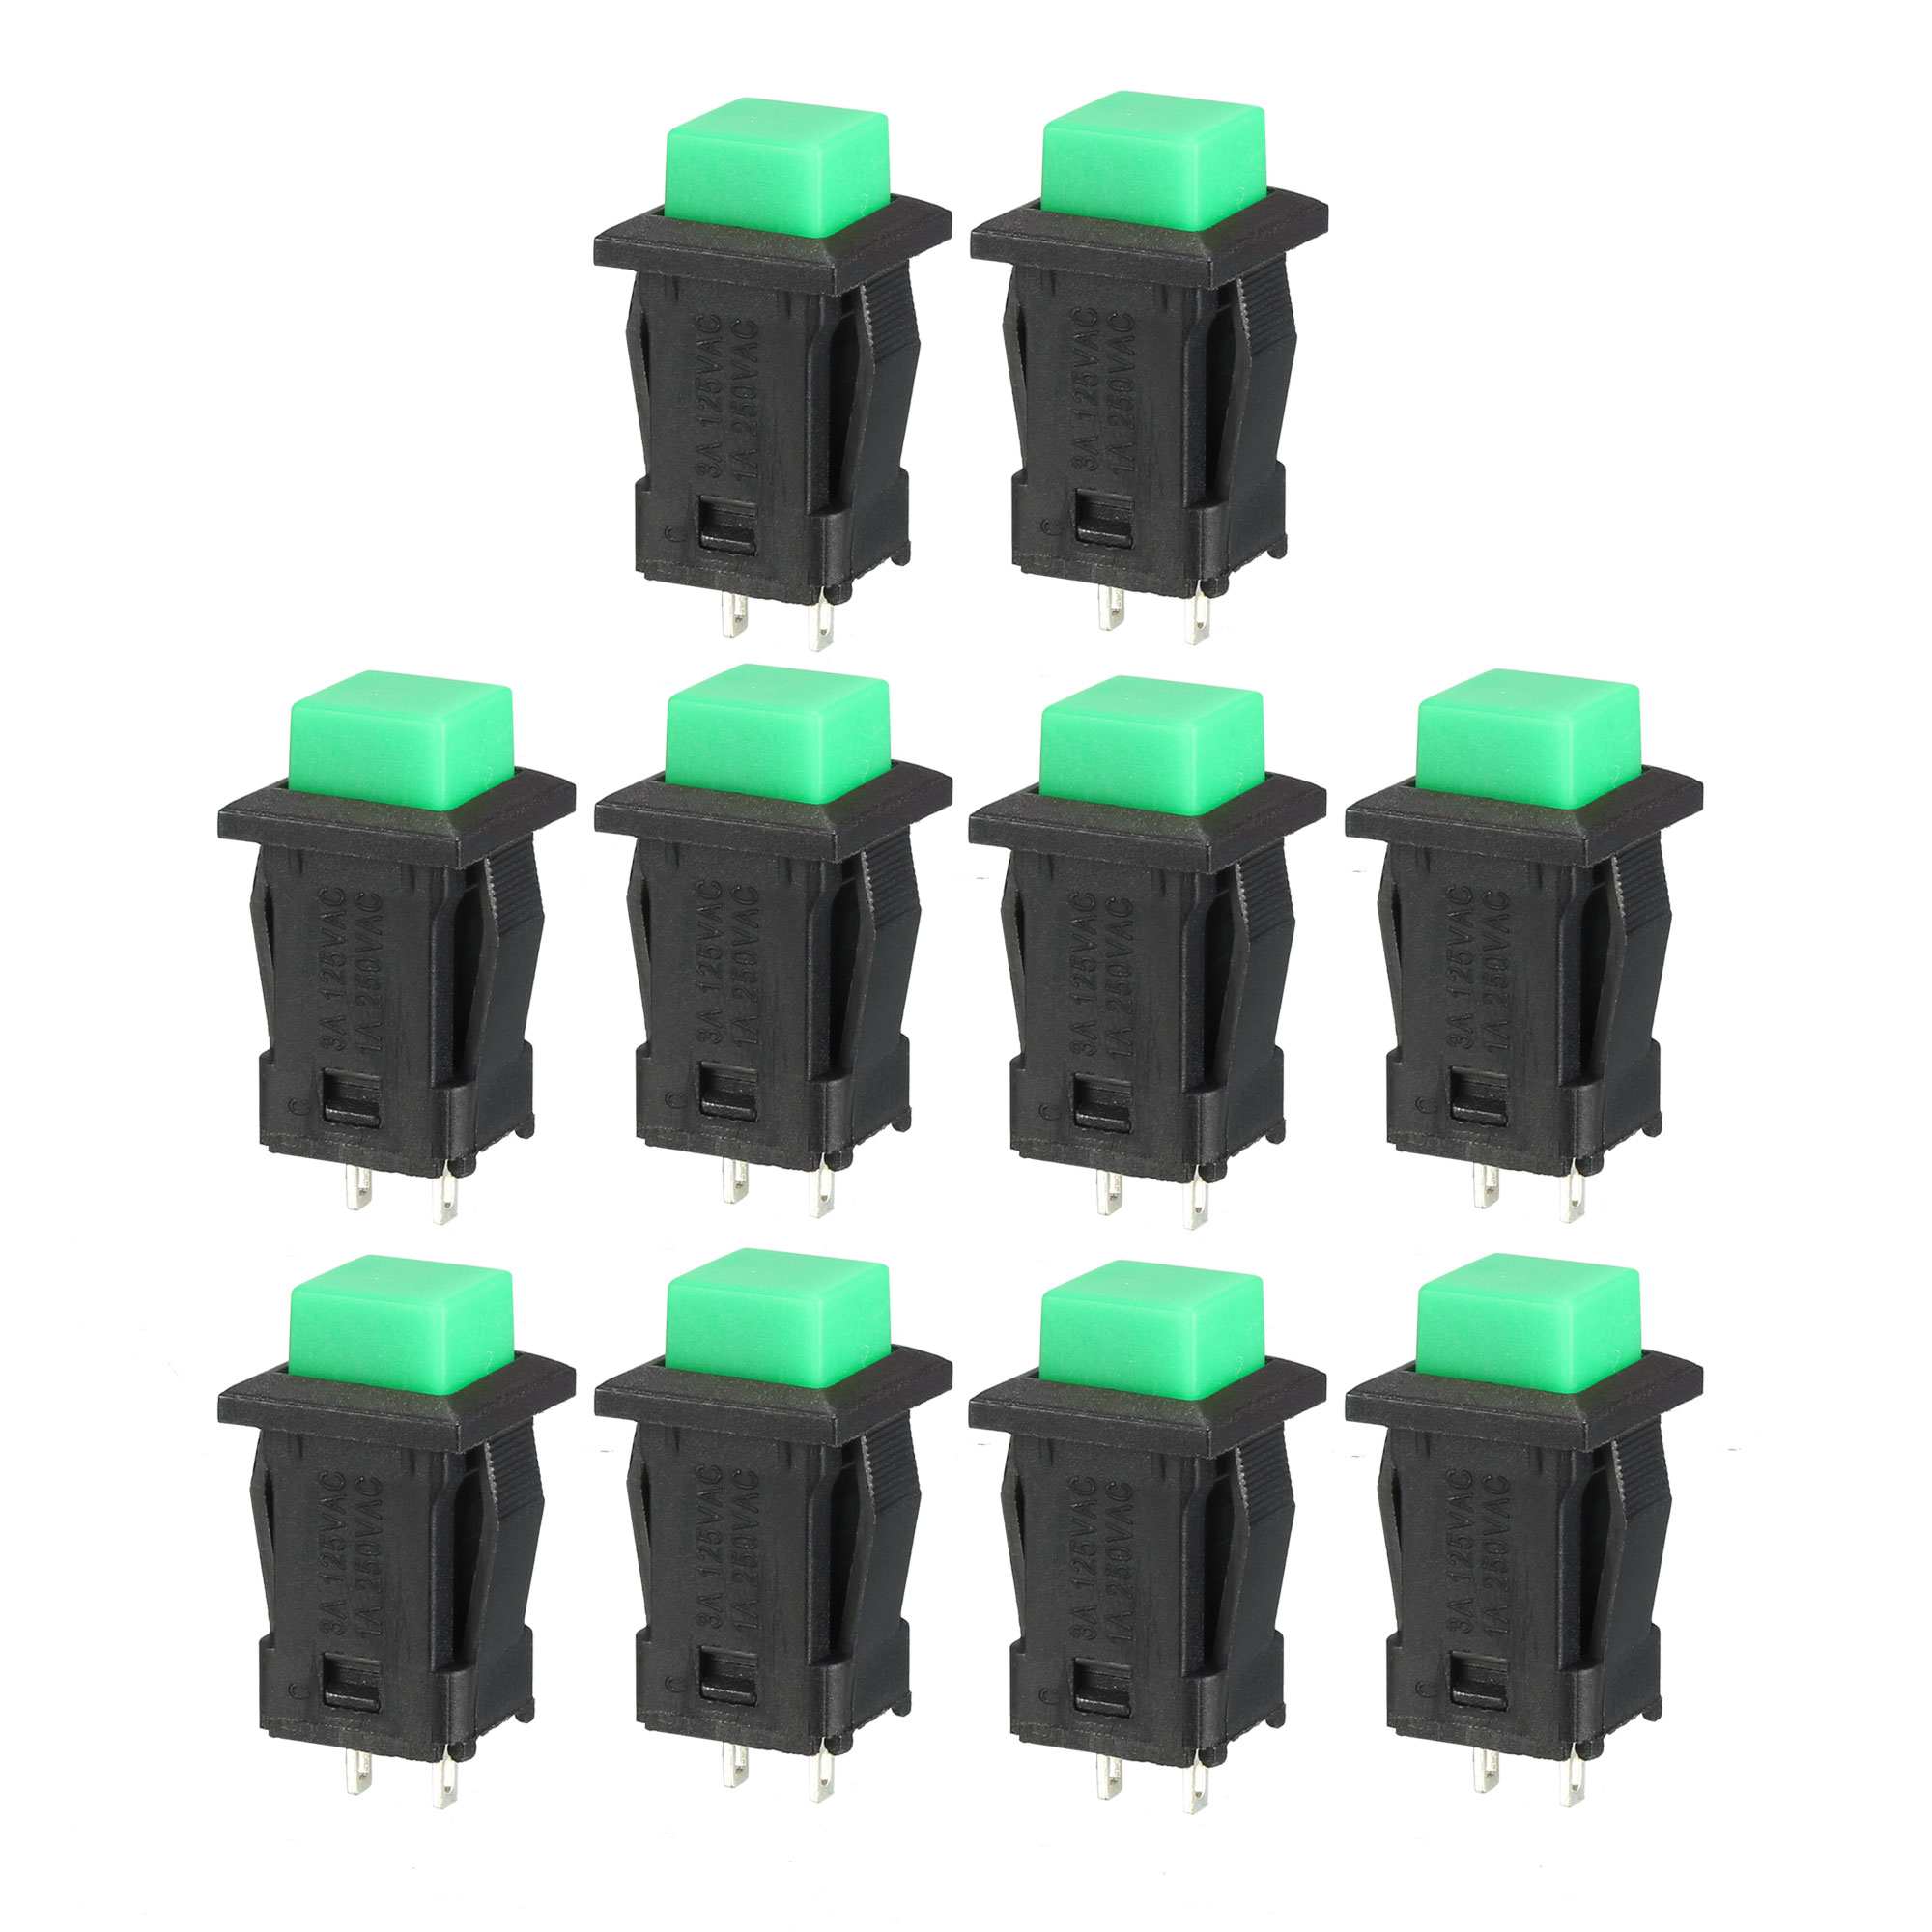 12mm Mounting Hole Green Square Latching Push Button Switch SPST NO 10pcs - image 4 of 4